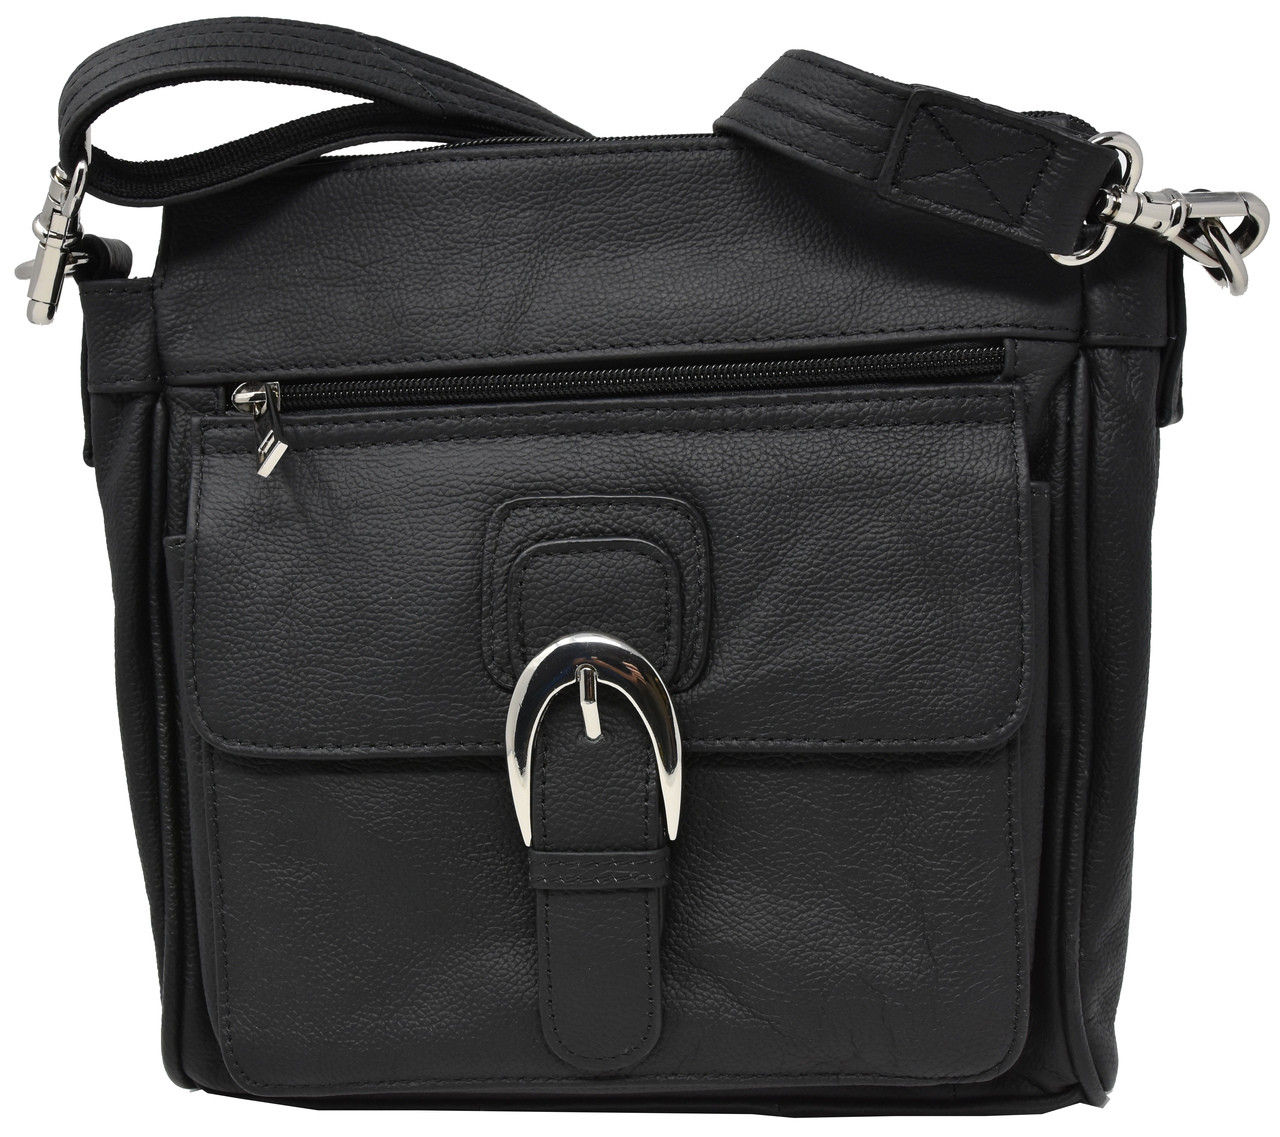 2354d4d351db Black Crossbody or Shoulder Carry Leather Locking Concealment Purse - CCW  Concealed Carry Gun Bag